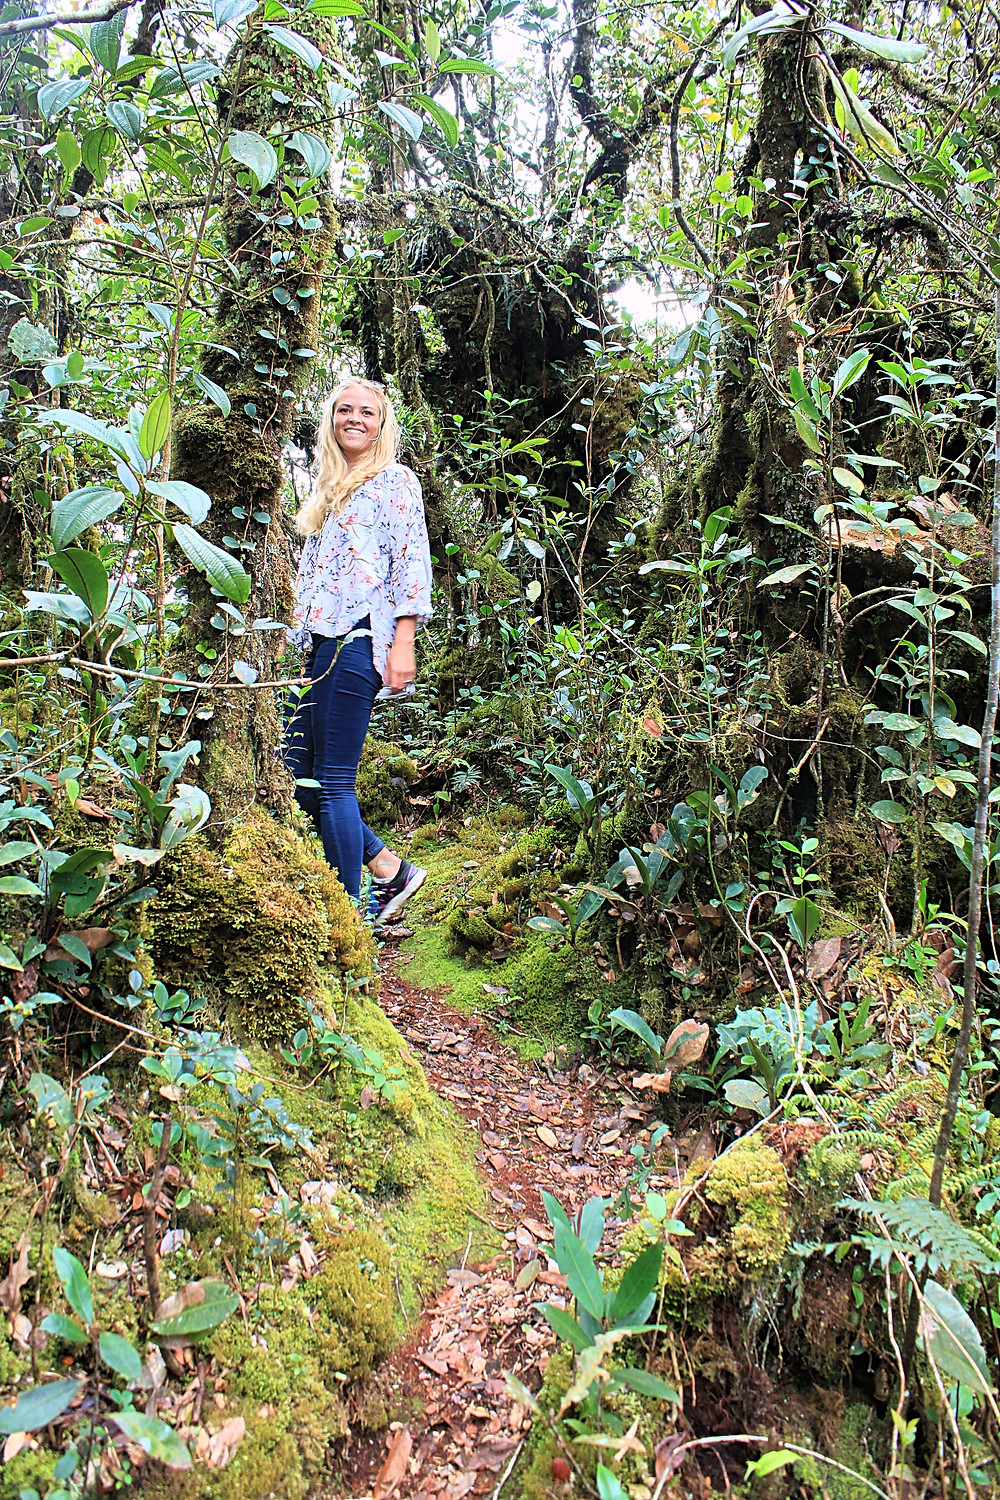 Hiking in the Mossy Forest, Cameron Highlands.